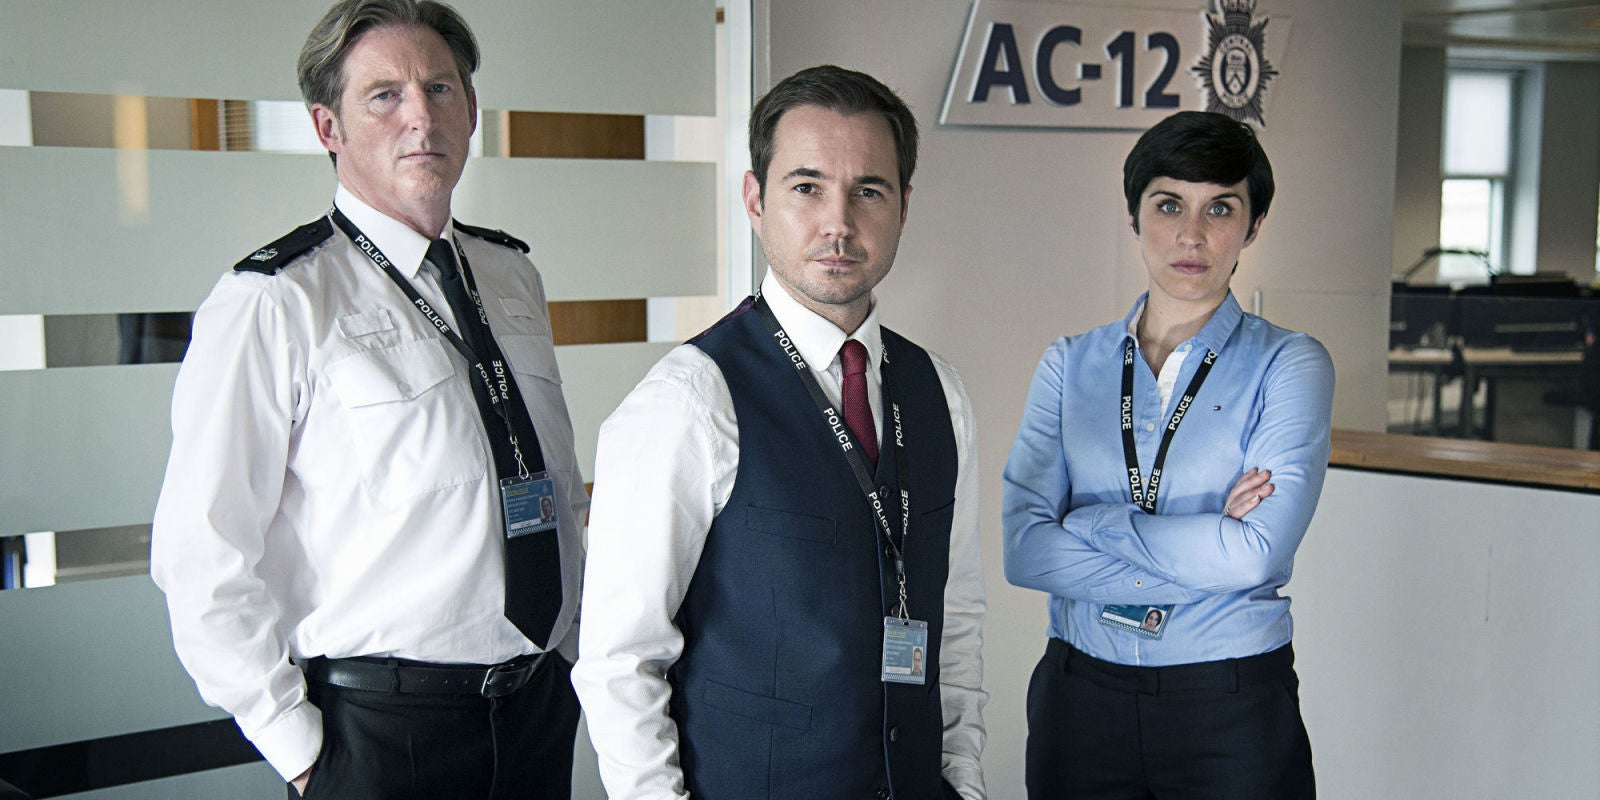 line of duty - photo #14